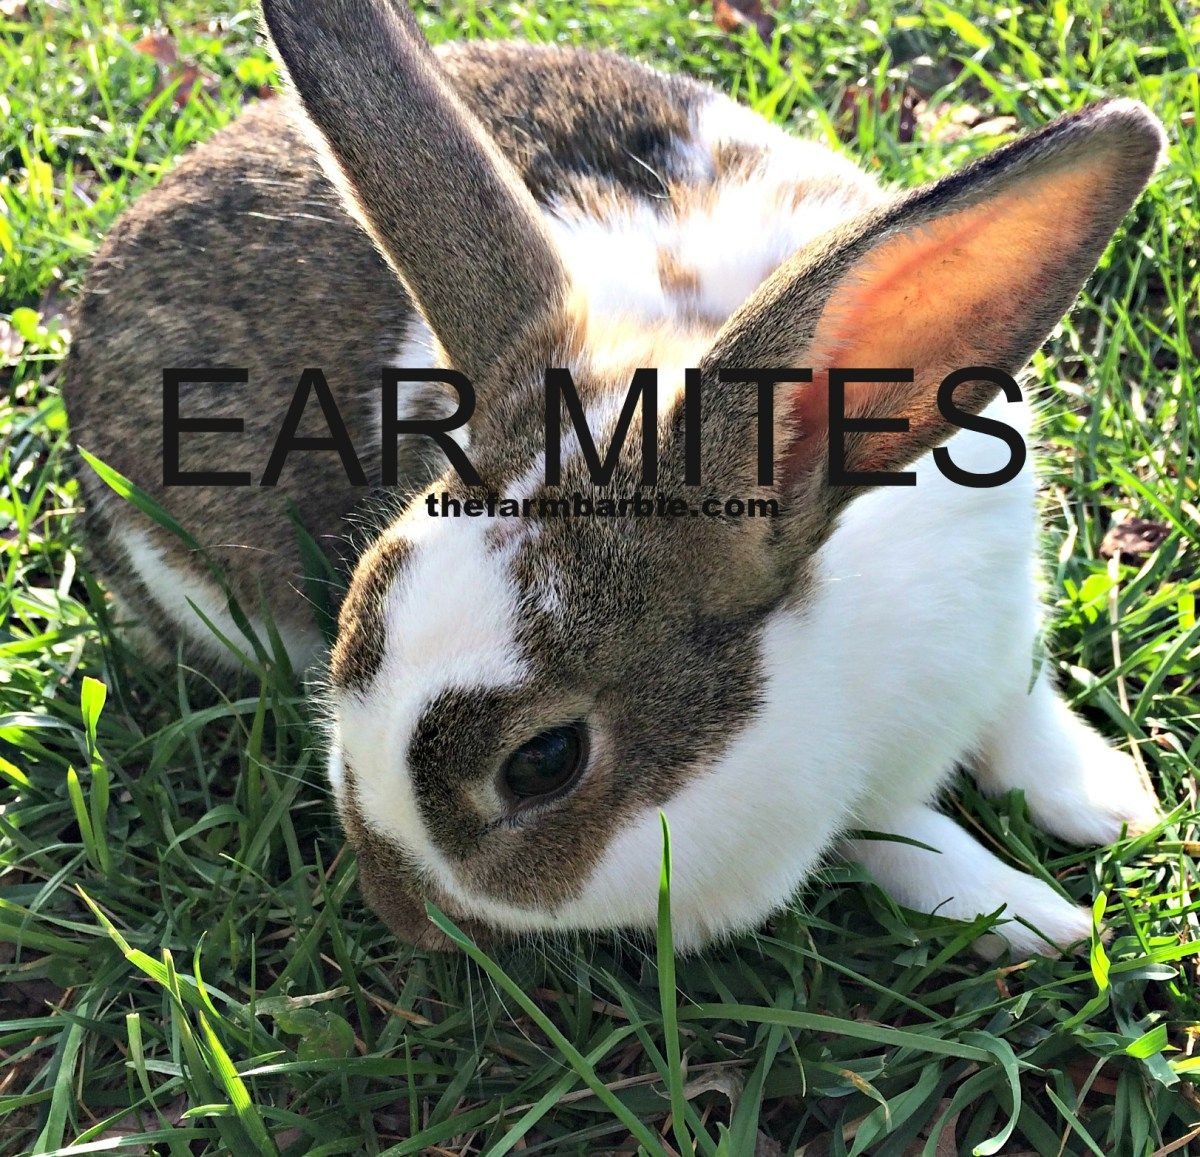 Help My Rabbit Has Crusty Ears Rabbit Pet Rabbit Your Dog